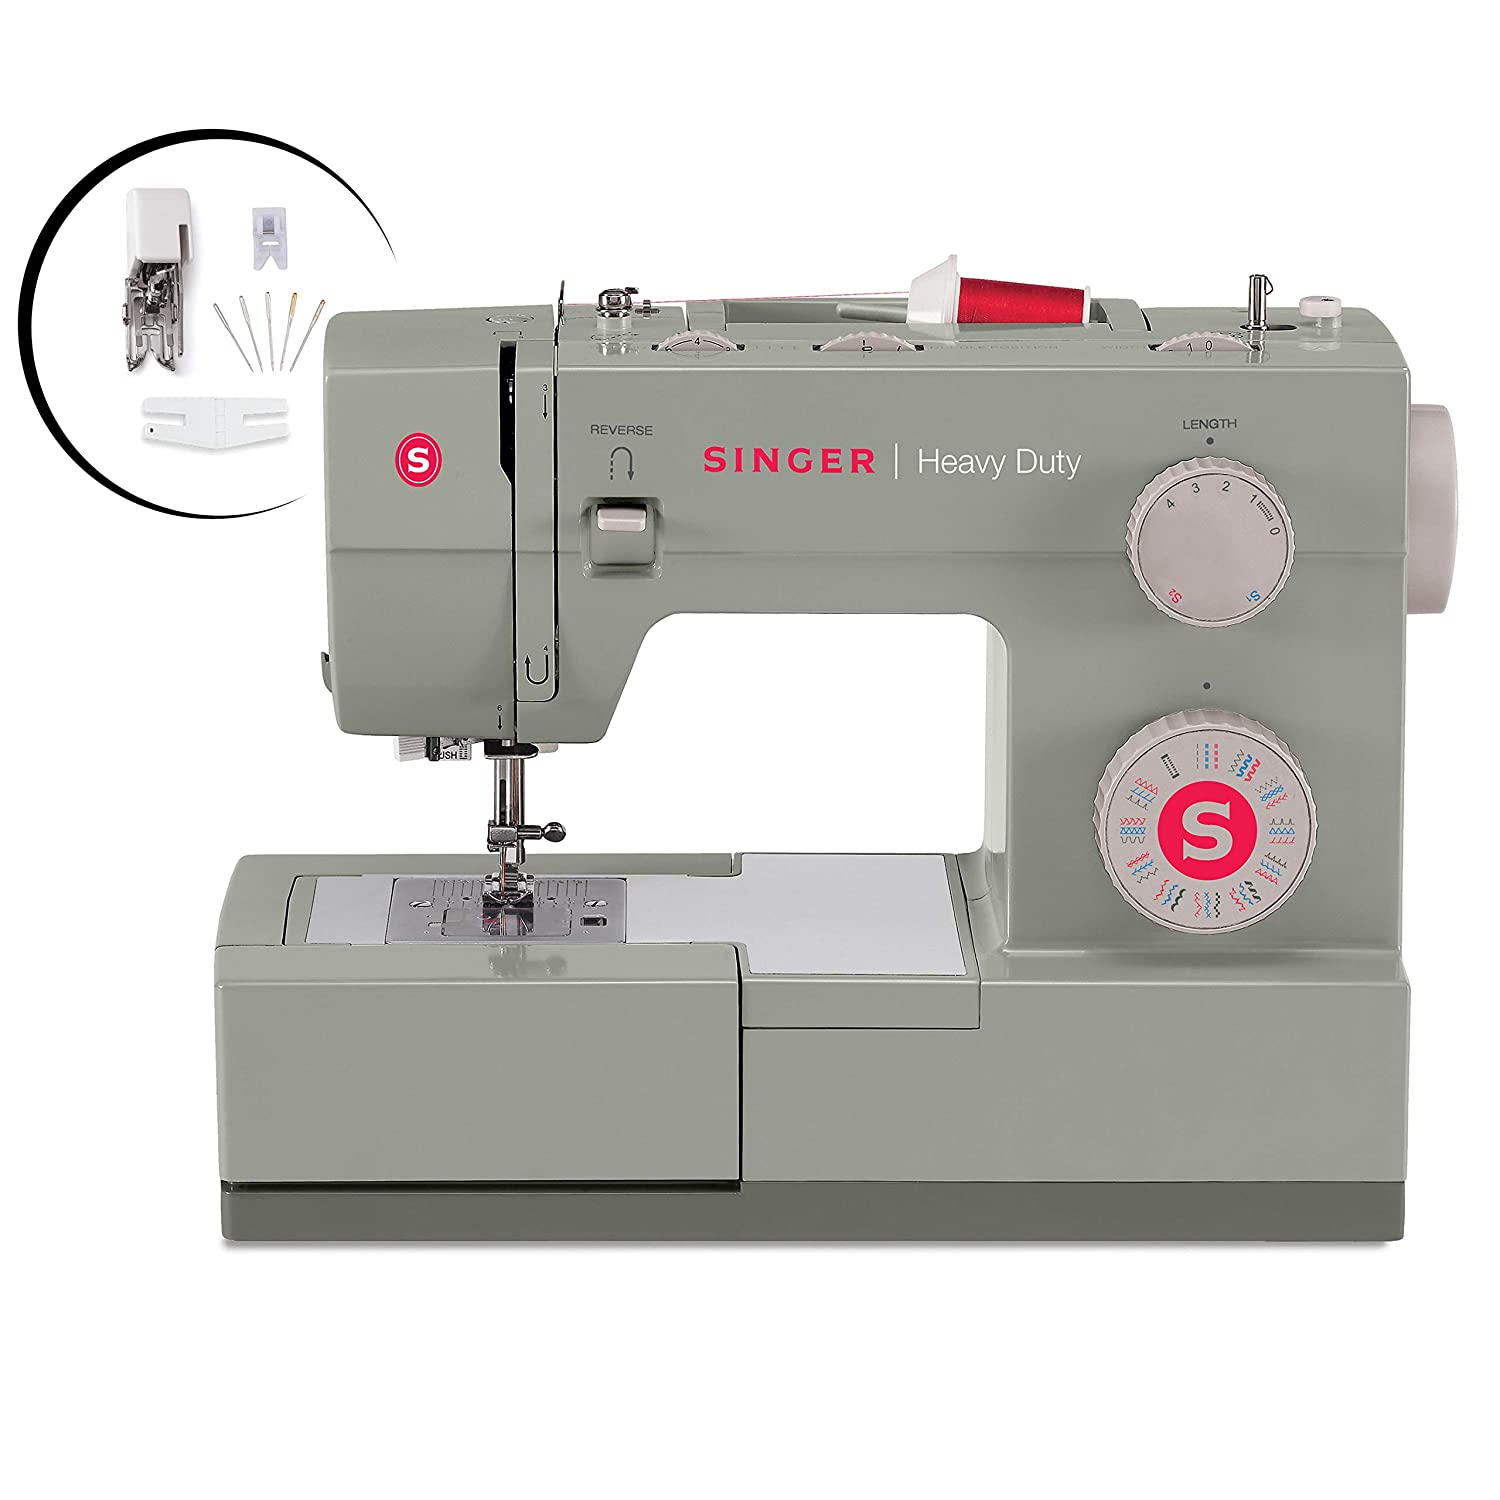 Top 9 Best Singer Sewing Machine Reviews in 2019 7